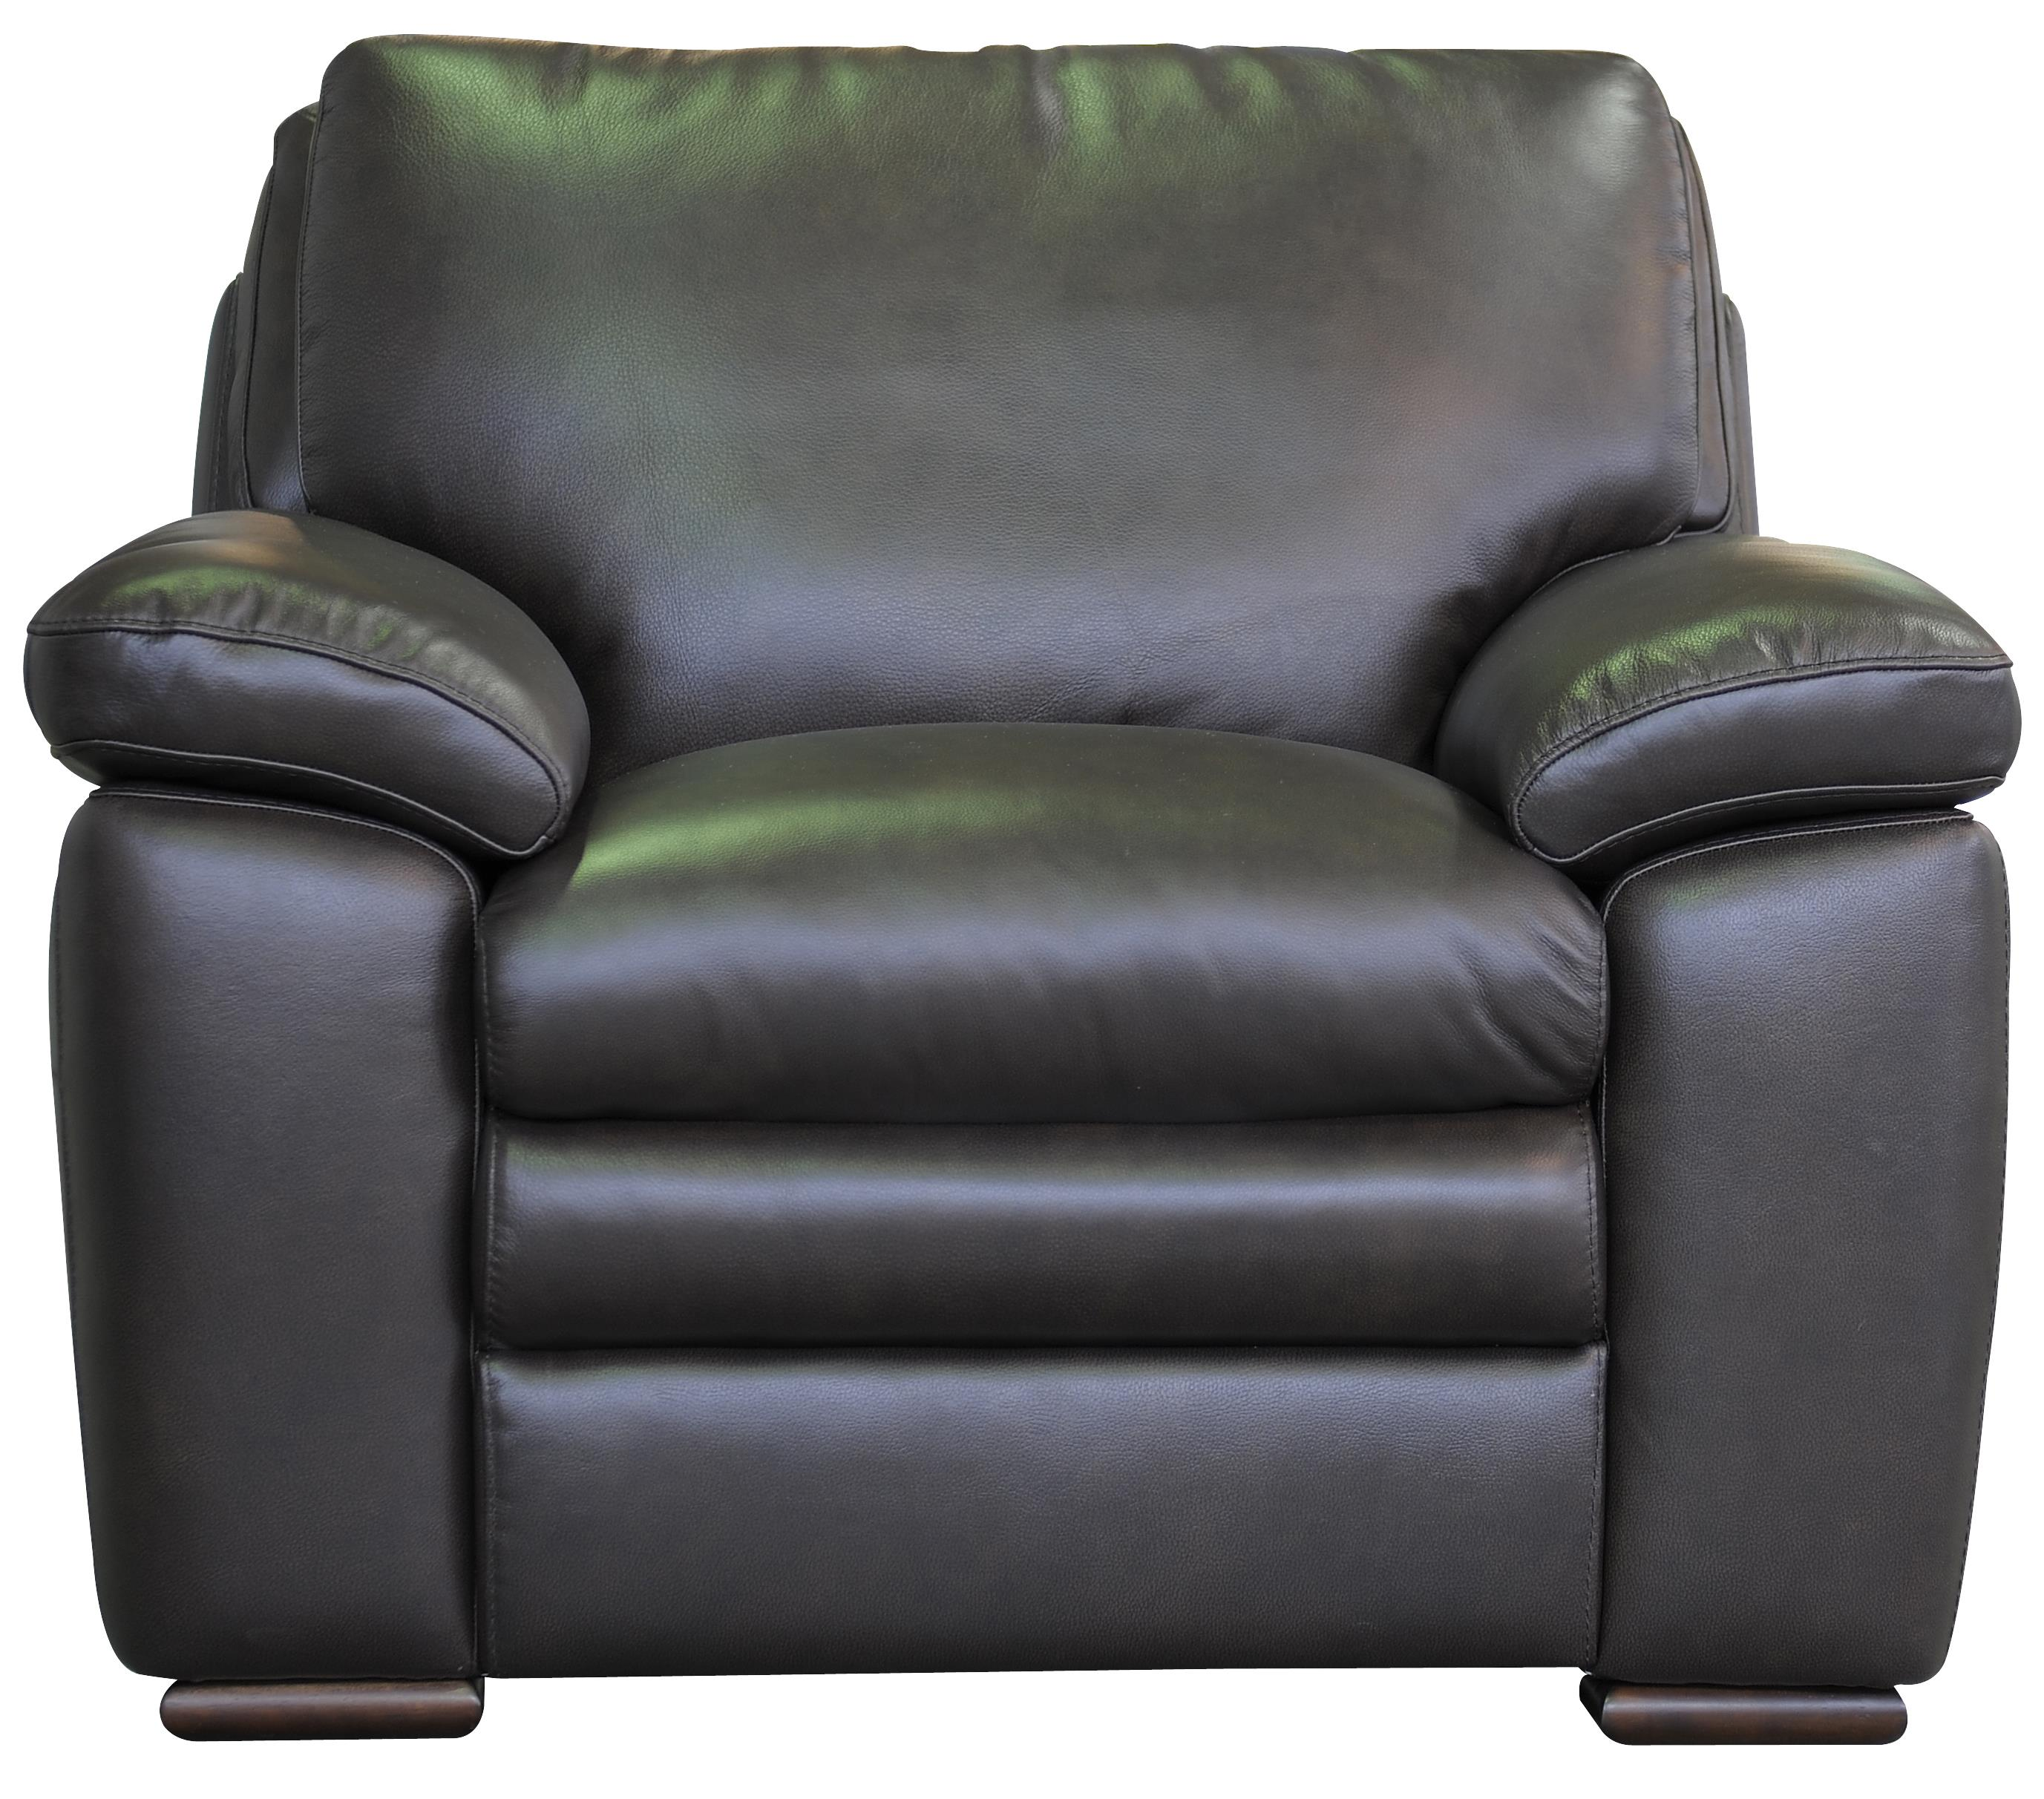 3620 Upholstered Chair by Violino at Furniture Superstore - Rochester, MN